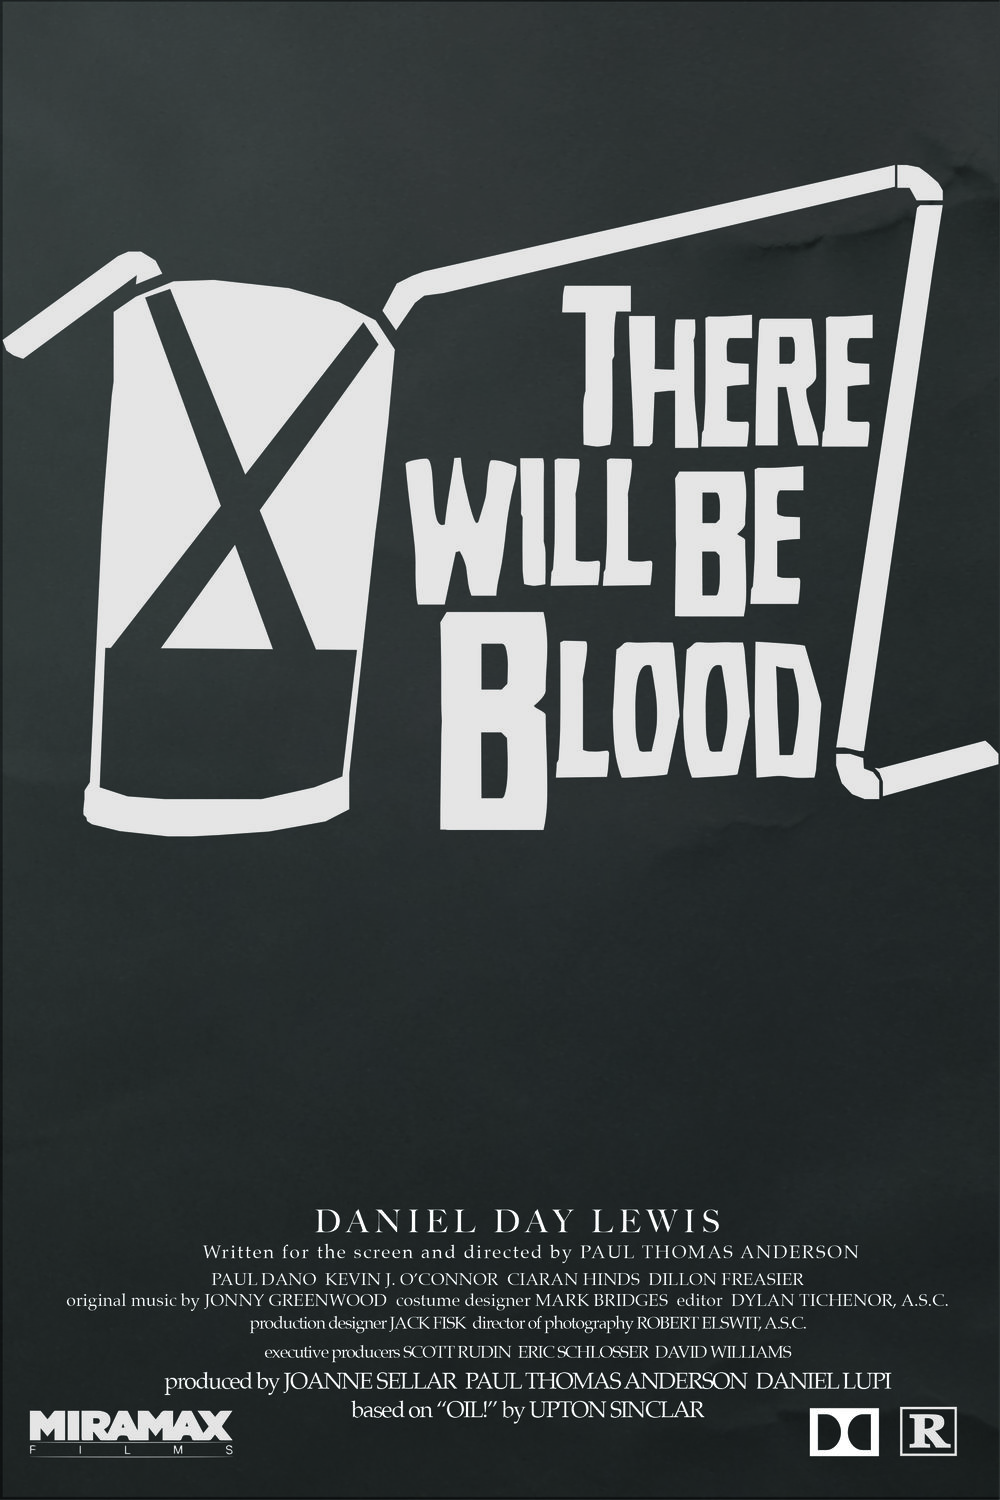 AT325 Page Layout - Movie Poster: Dave Thomas